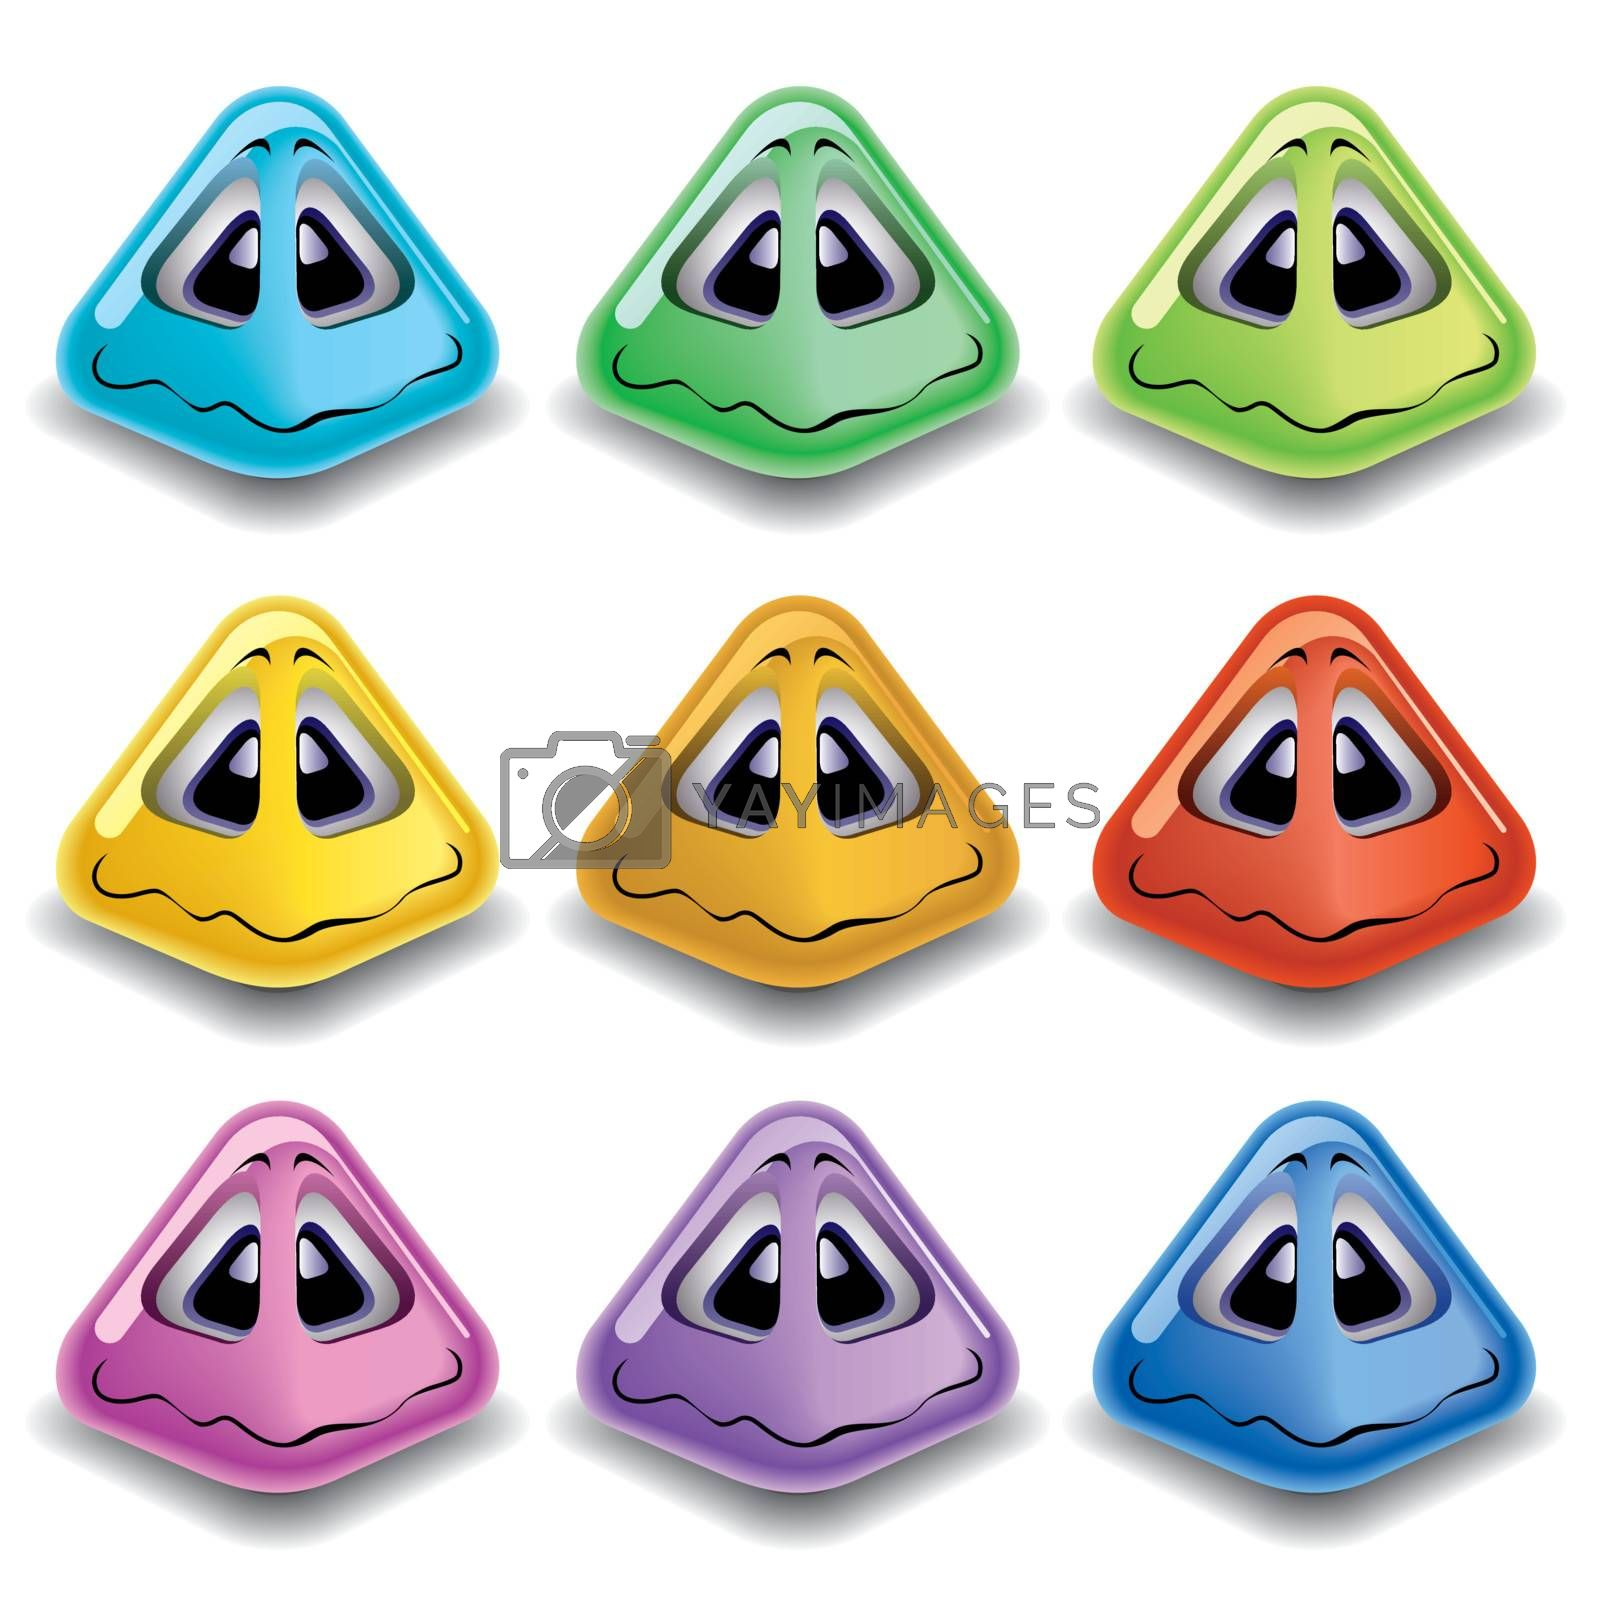 Pyramid shaped smiling balls in different colors